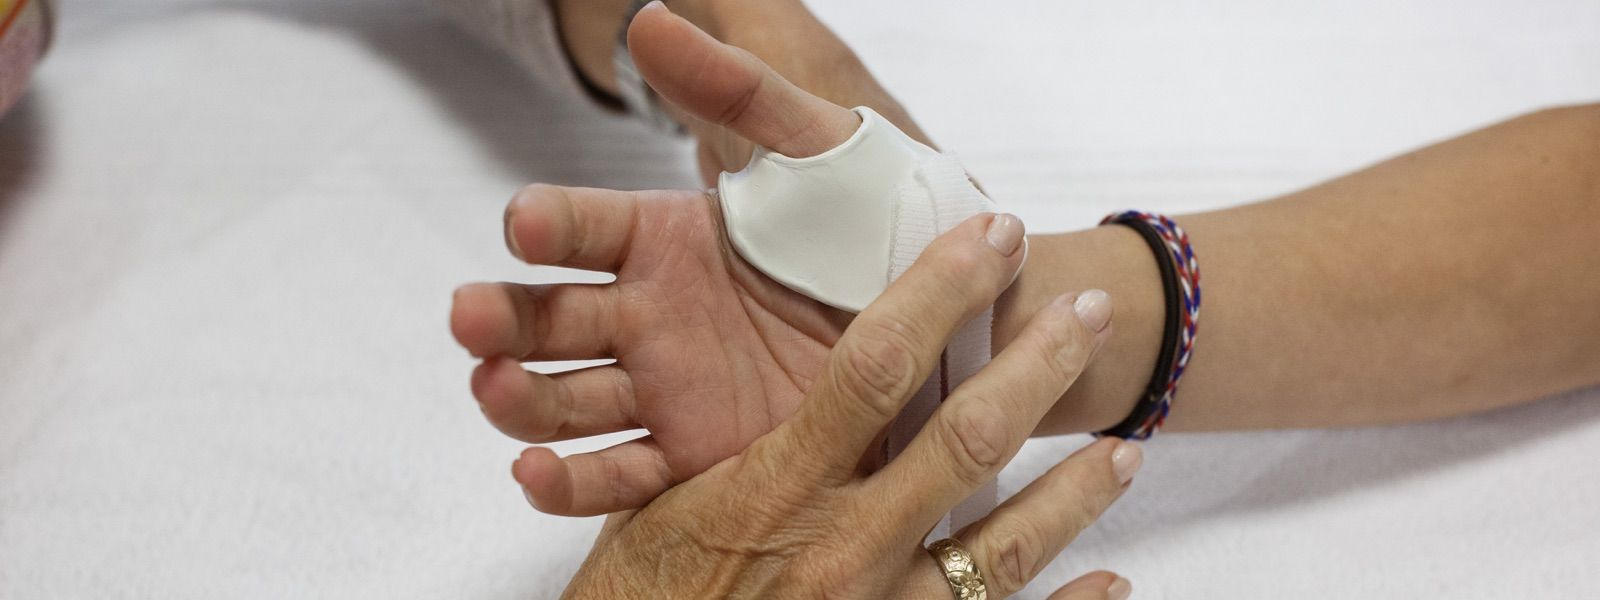 Hand Problems And Pain Cooper University Health Care